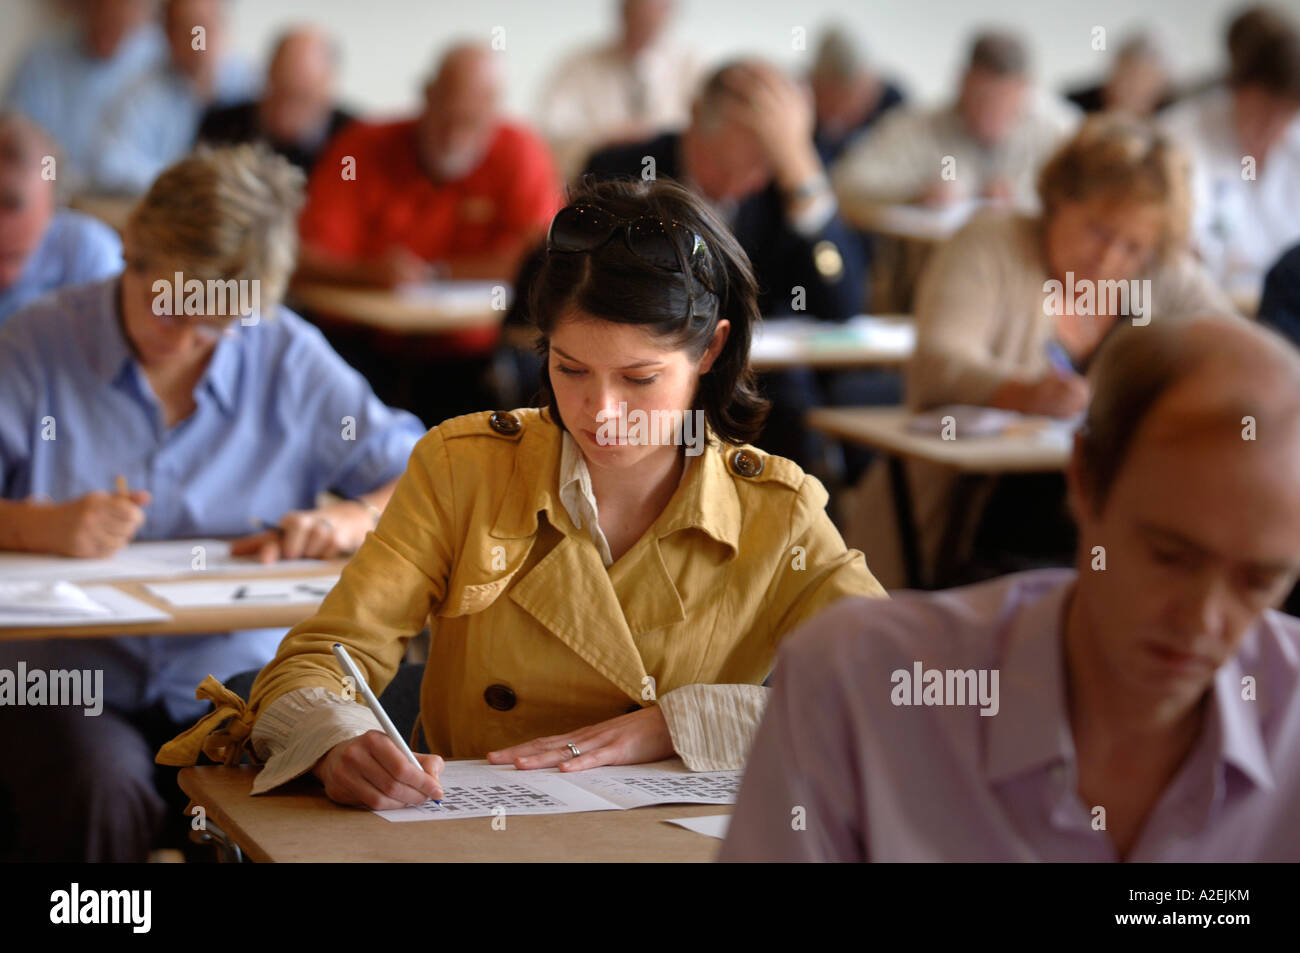 A YOUNG FEMALE CONTESTANT AT THE TIMES NATIONAL CROSSWORD COMPETITION CUP DURING THE CHAMPIONSHIPS IN CHELTENHAM UK 2006 Stock Photo